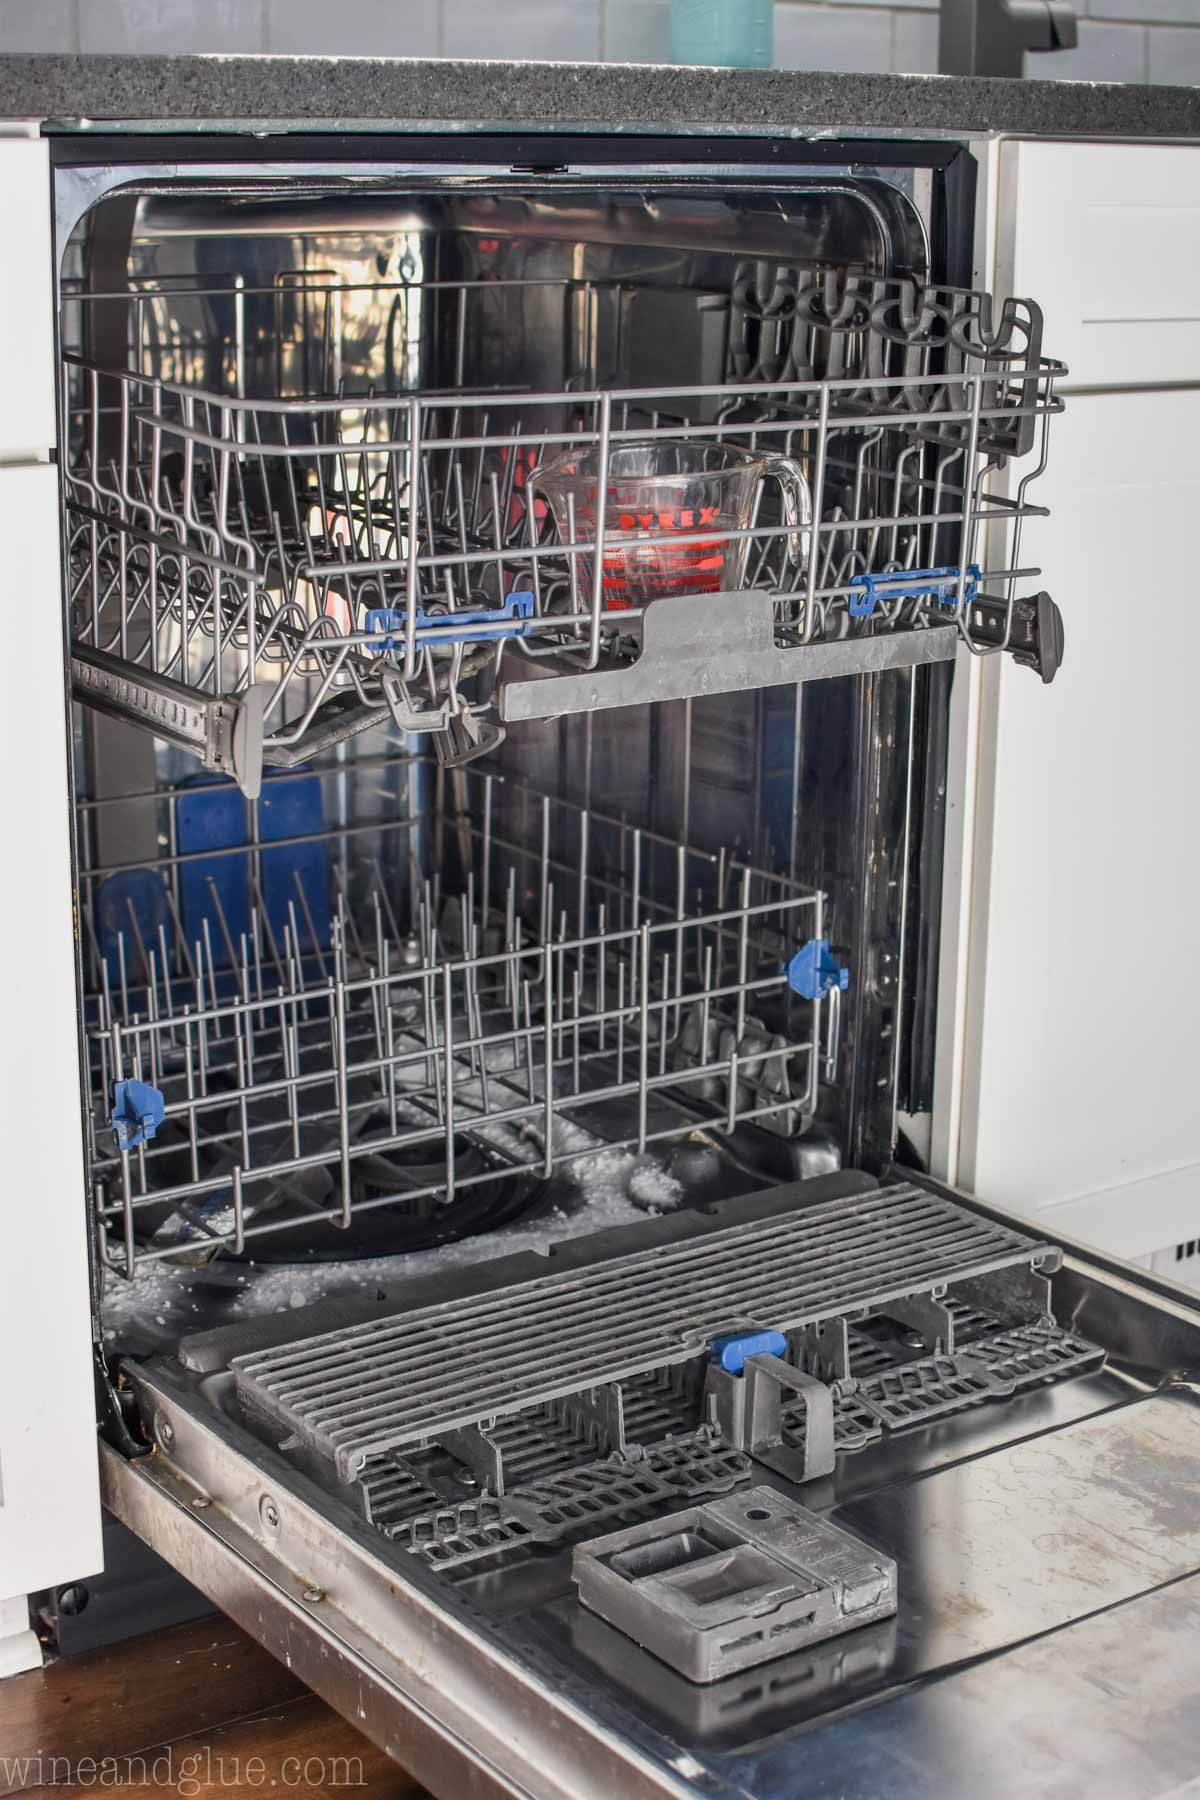 A fast and simple way to clean your dishwasher using just